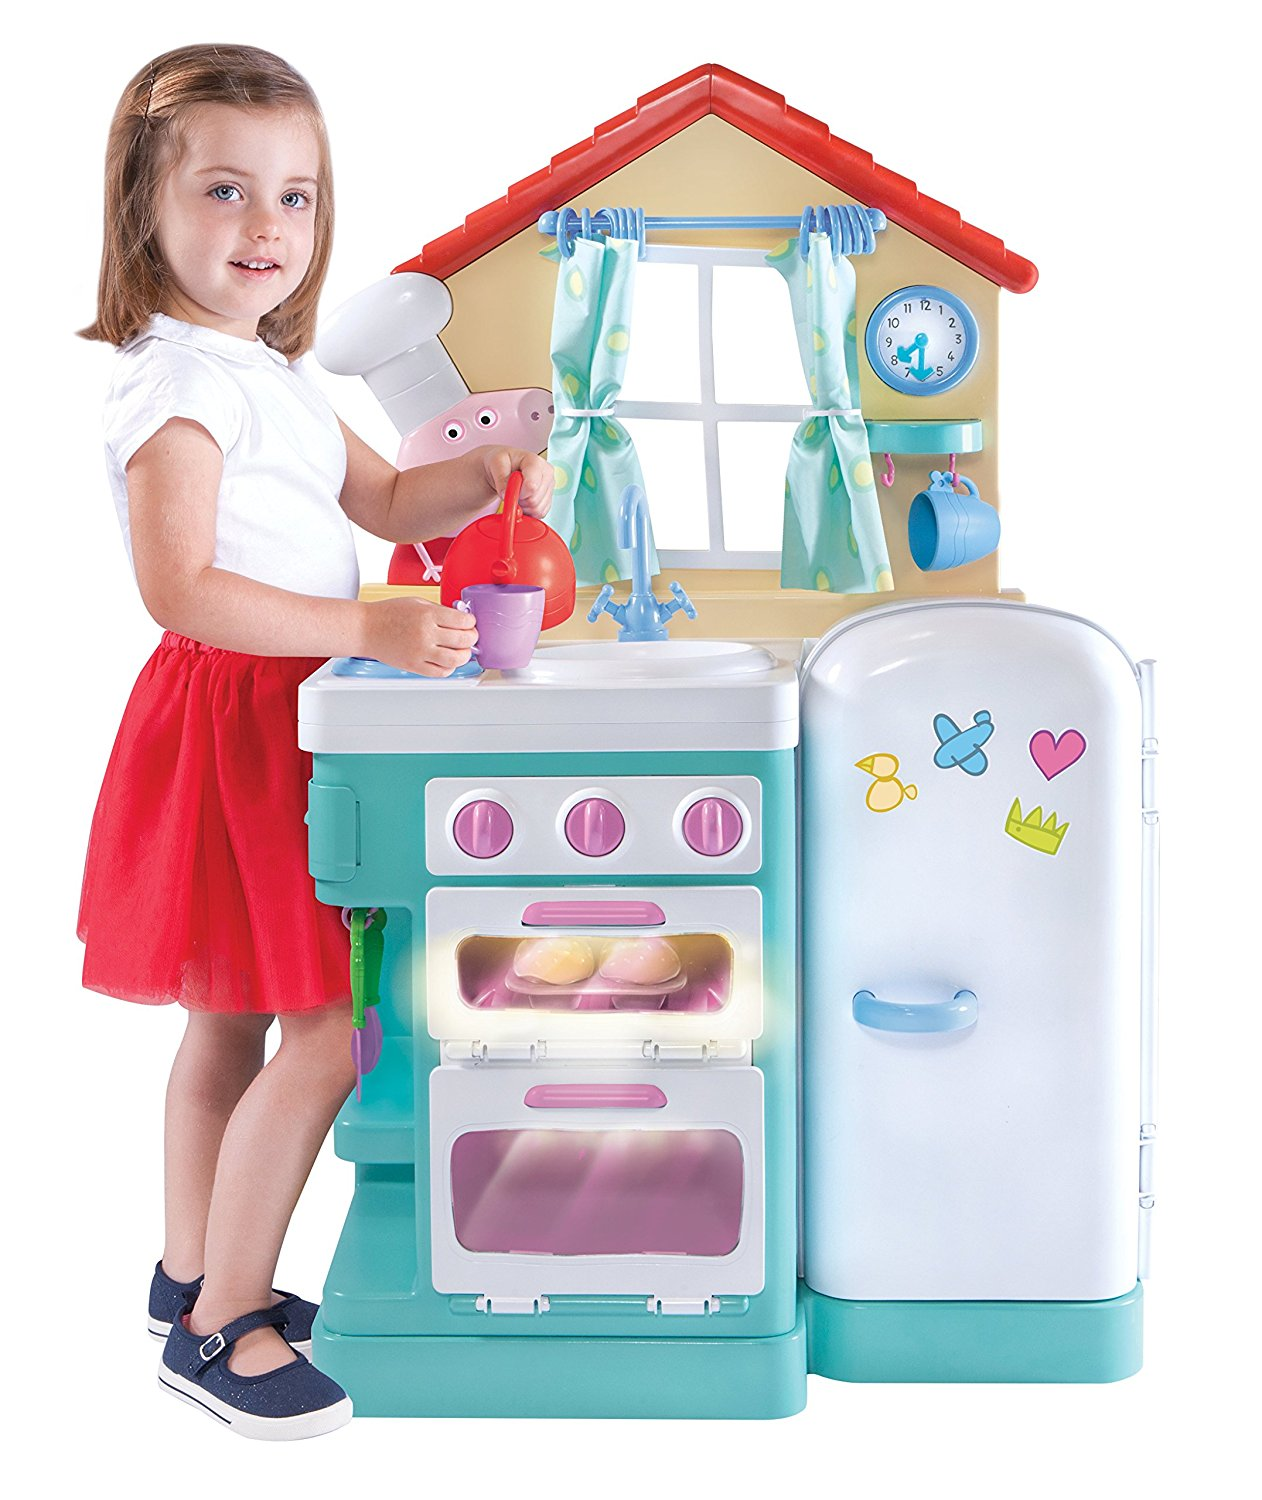 Peppa Pig Giggle & Bake Kitchen ONLY $46.45 Shipped (Reg. $80 ...